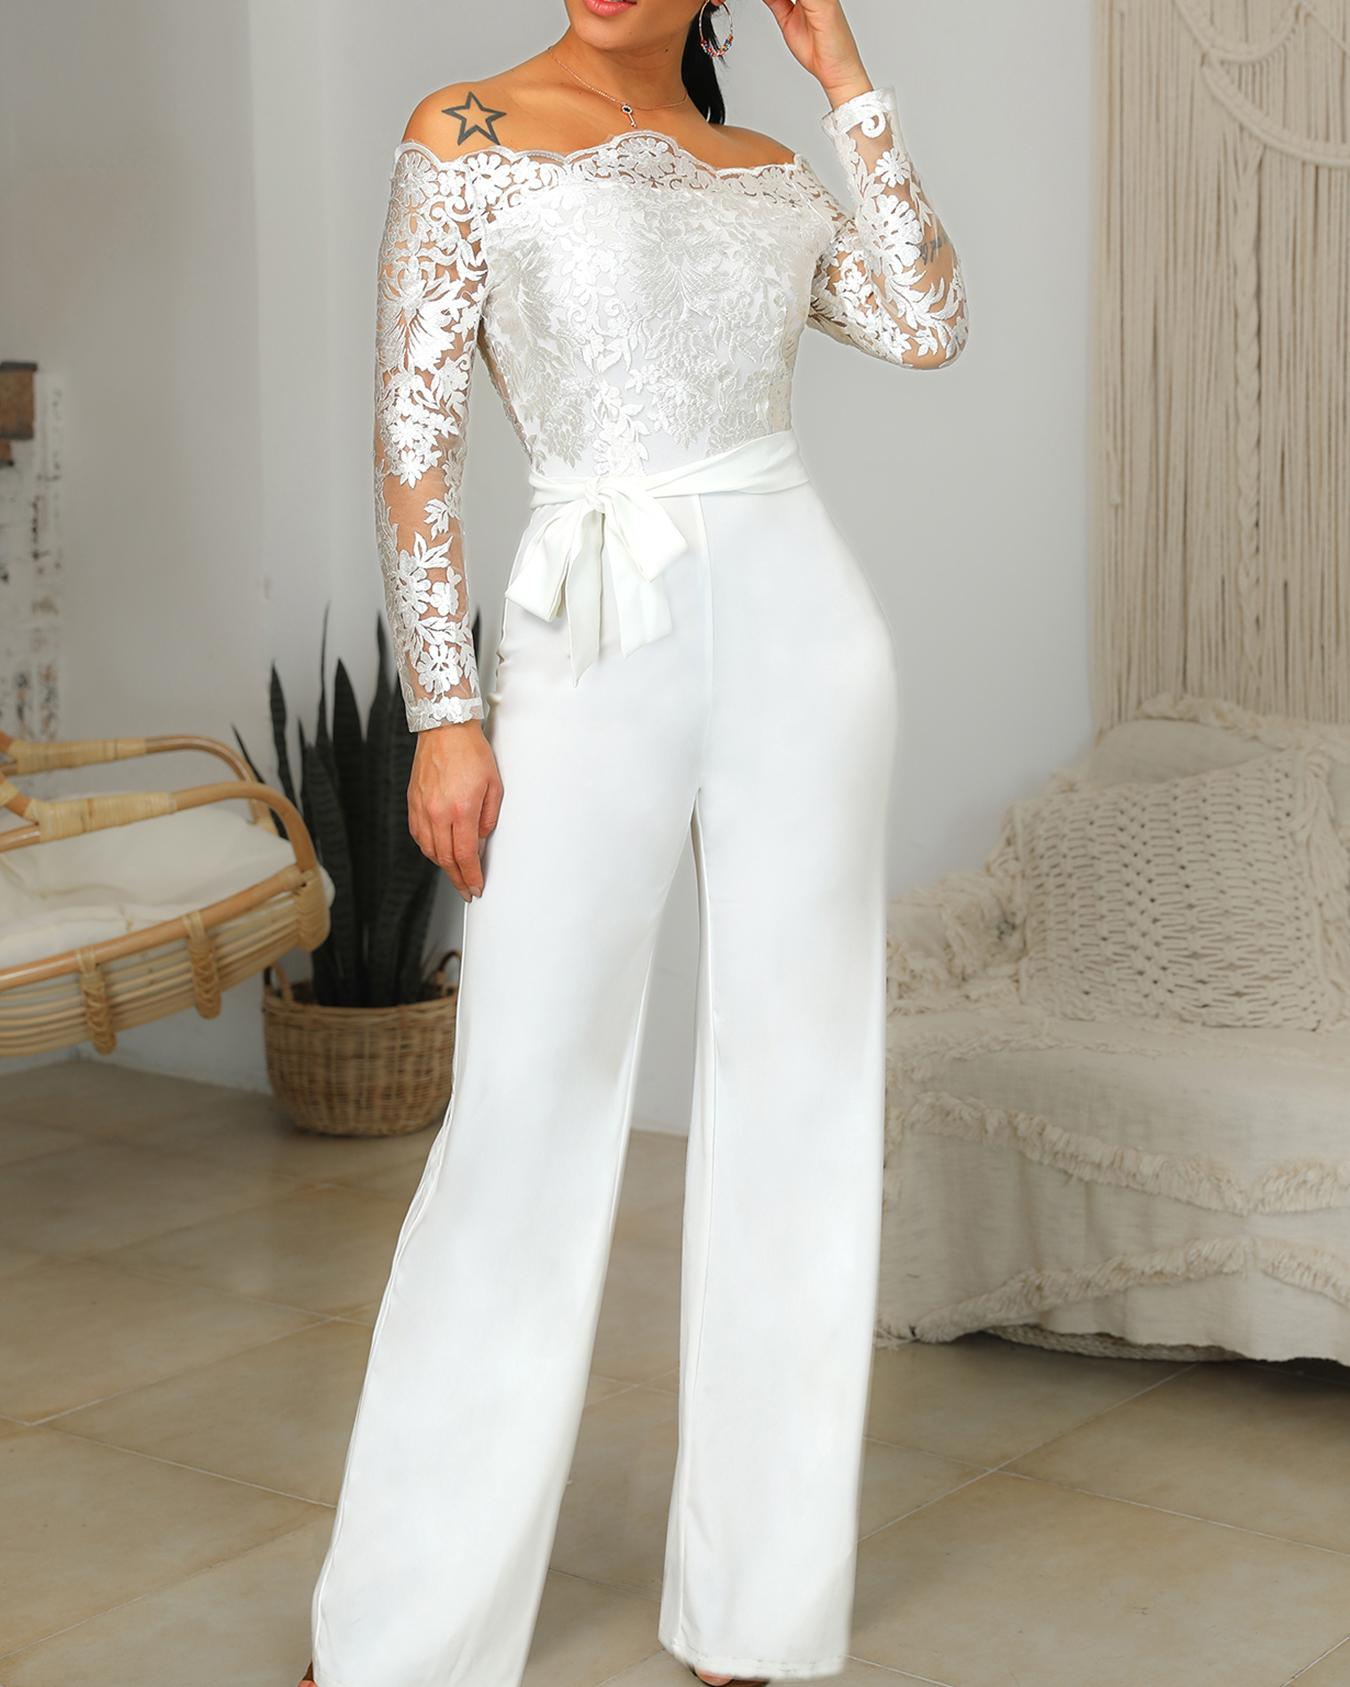 db8fa10d99a5 Off Shoulder Belted Lace Bodice Jumpsuit Online. Discover hottest trend  fashion at chicme.com